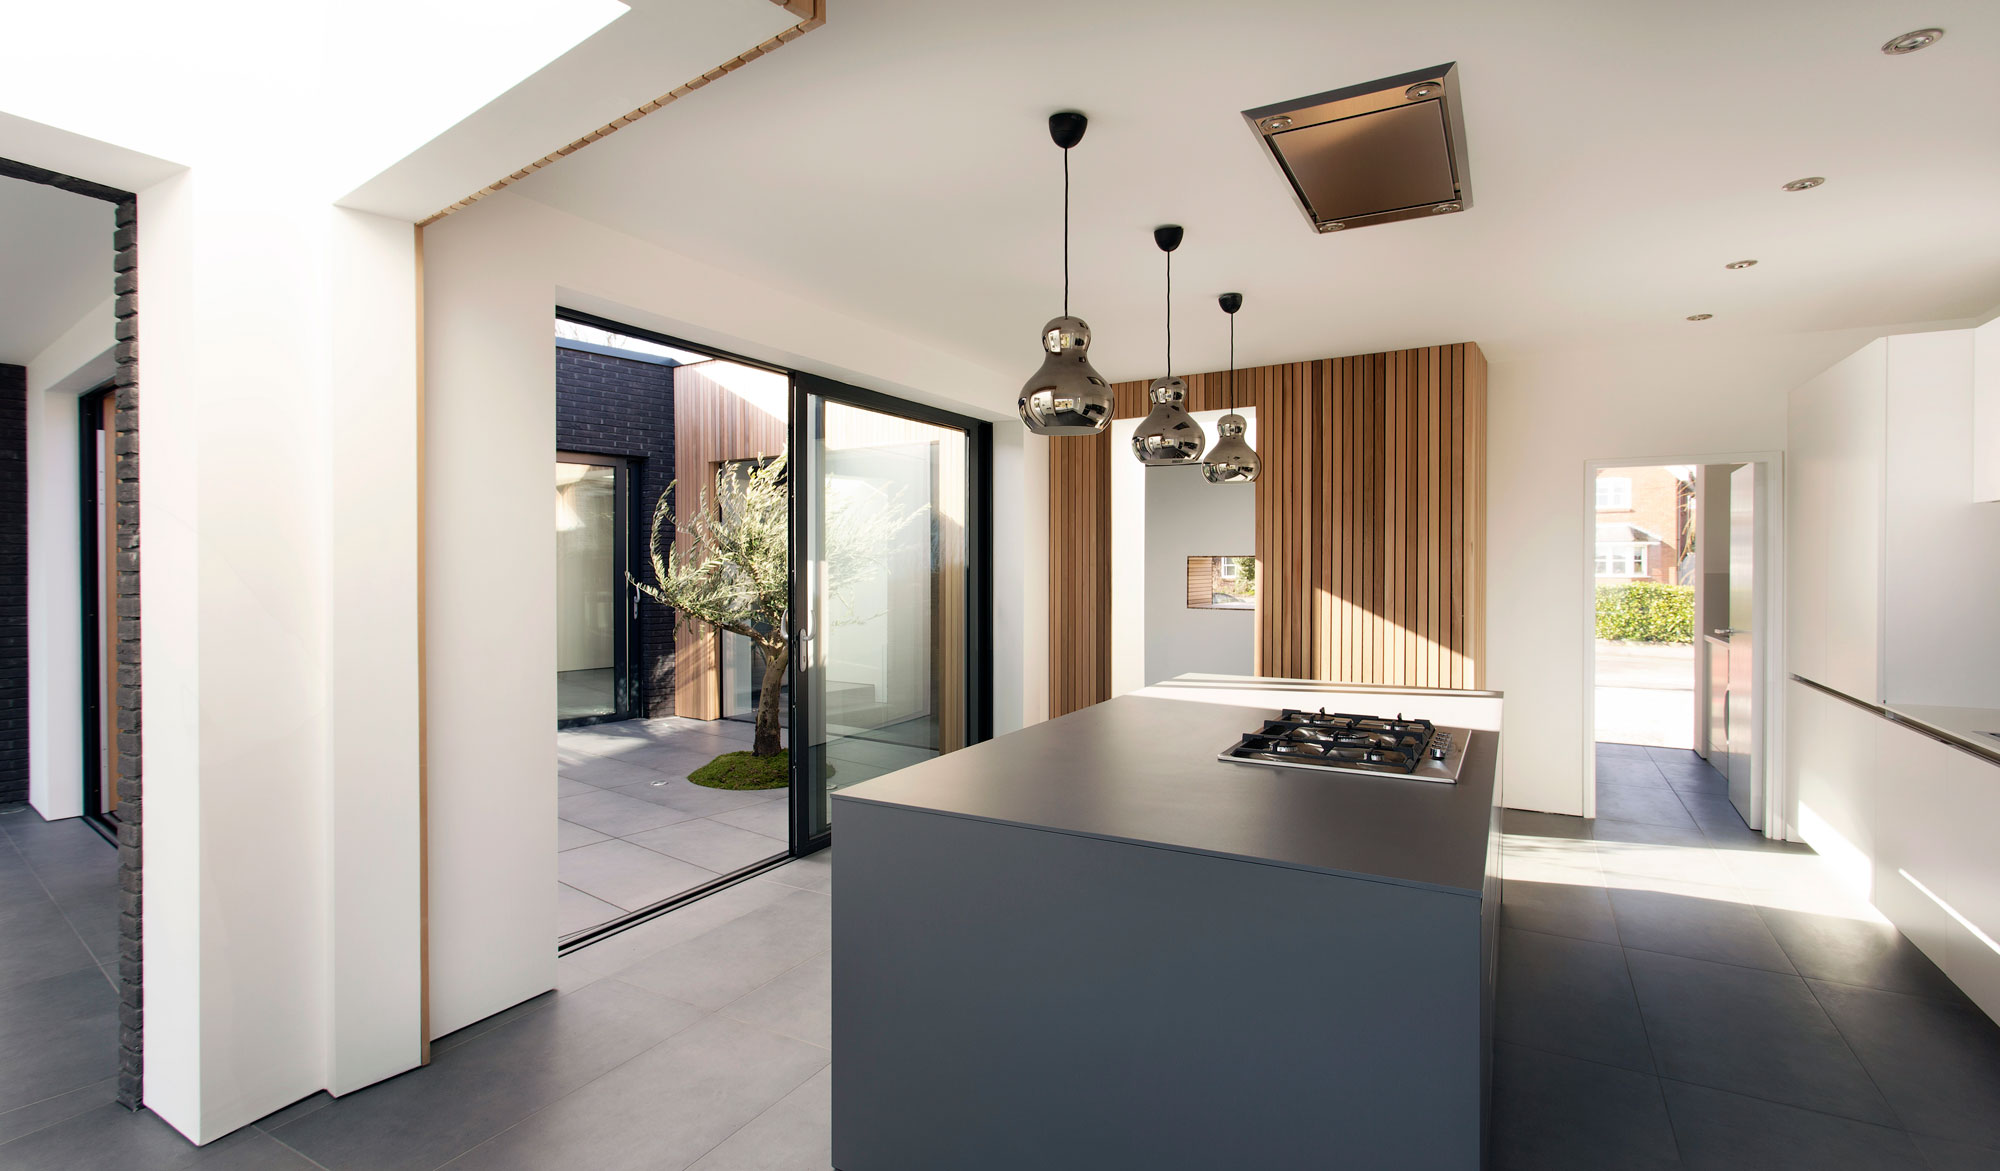 Internal Second Floor Courtyard, View from the Kitchen, Modern Home in Hampshire, England